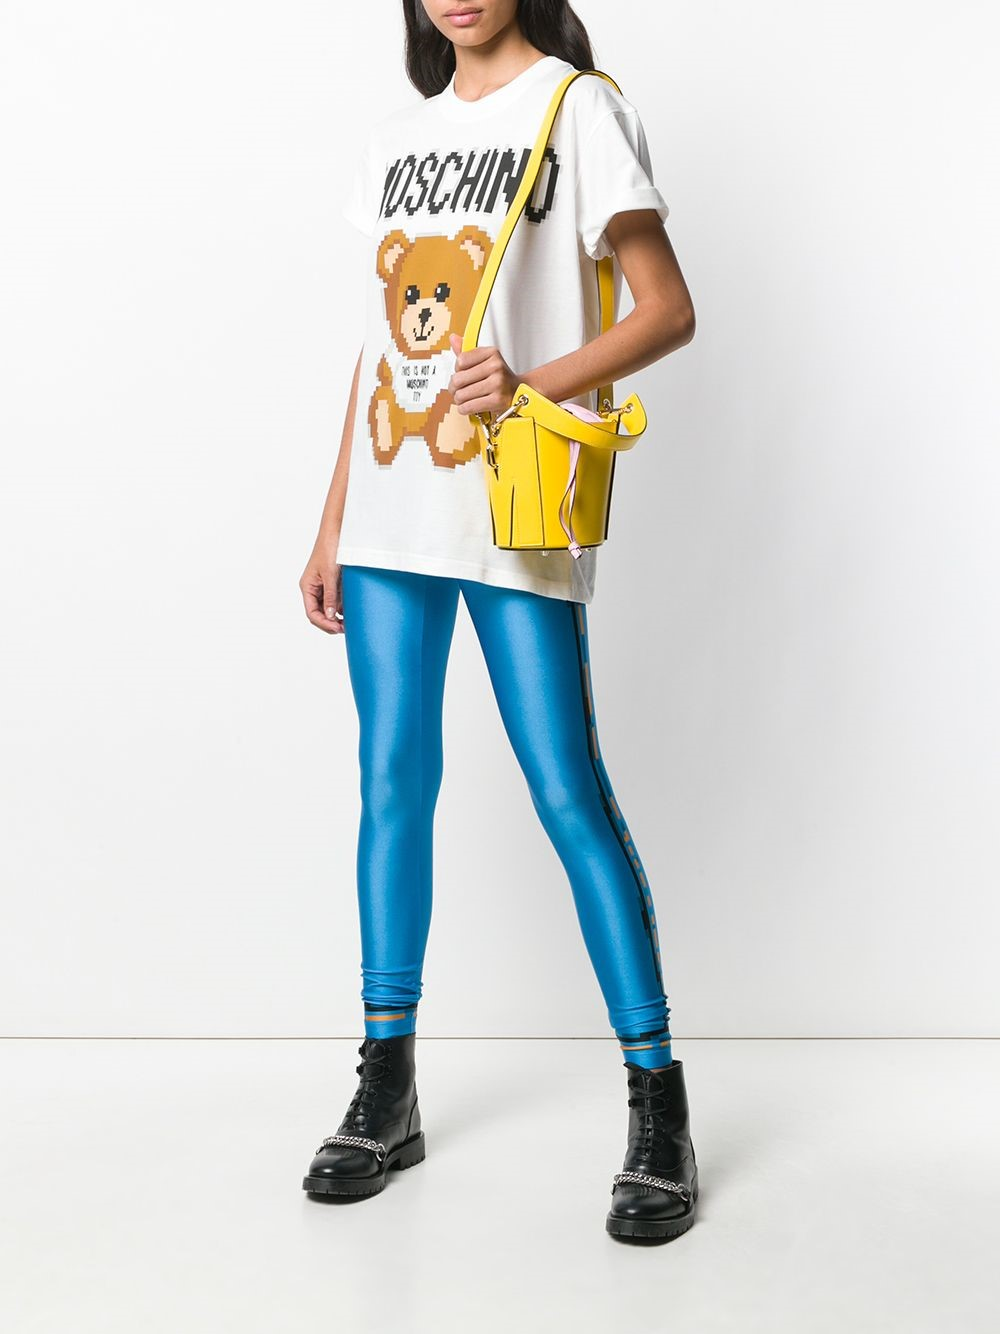 2b03f366b264 moschino PIXEL CAPSULE T-SHIRT available on montiboutique.com - 28119